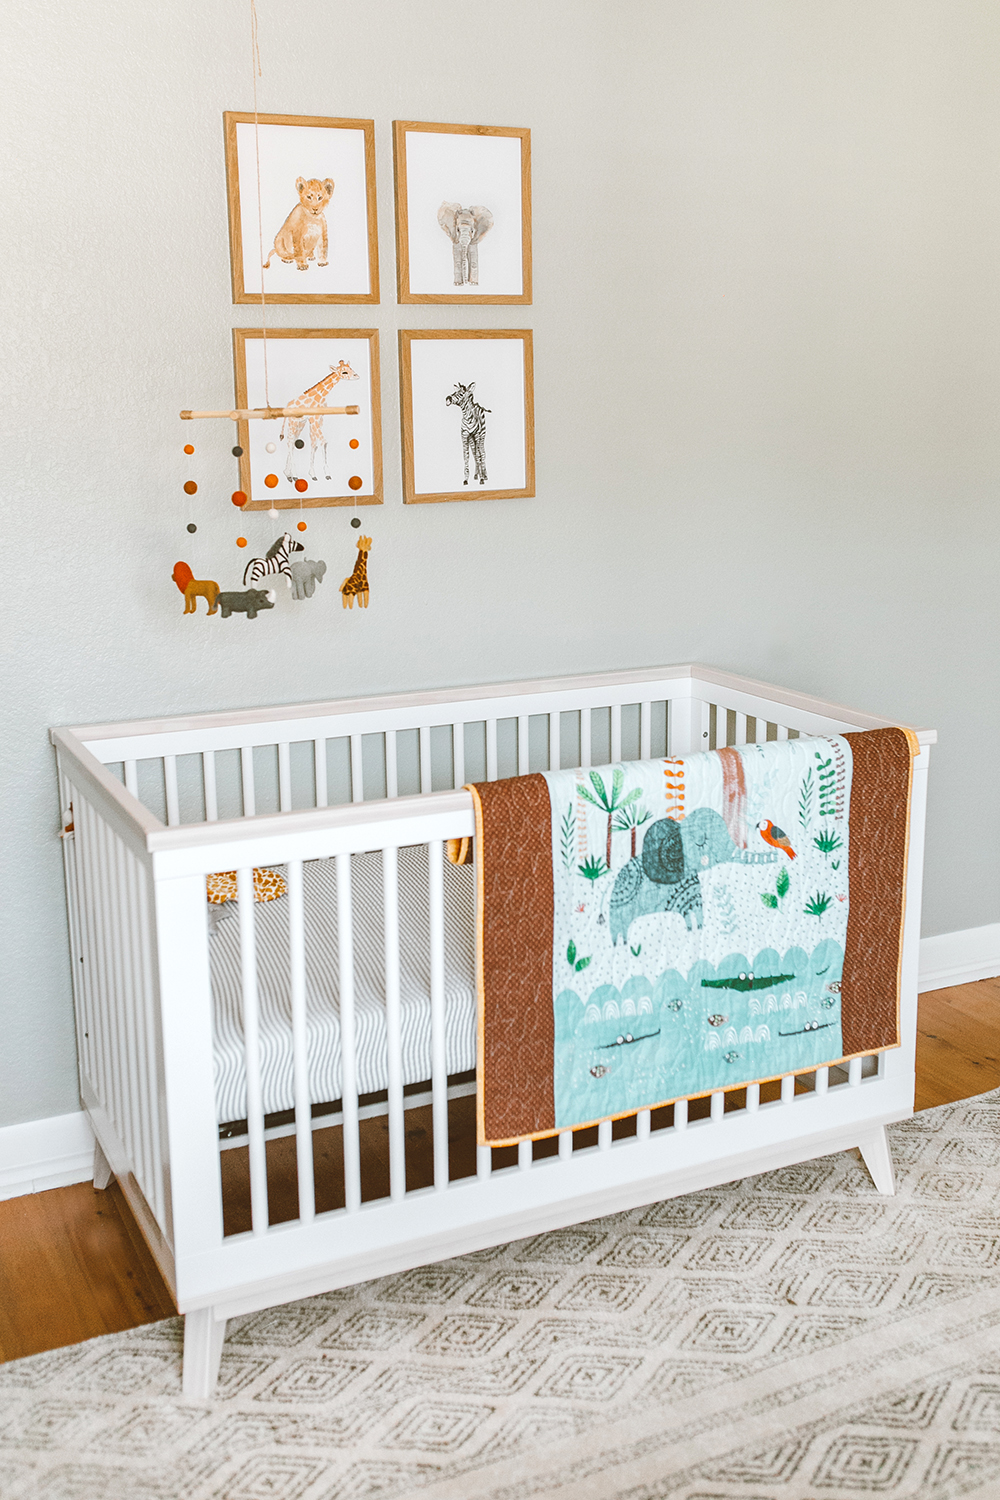 livvyland-blog-olivia-watson-baby-boy-gender-neutral-safari-nursery-theme-tour-reveal-earth-tones-11